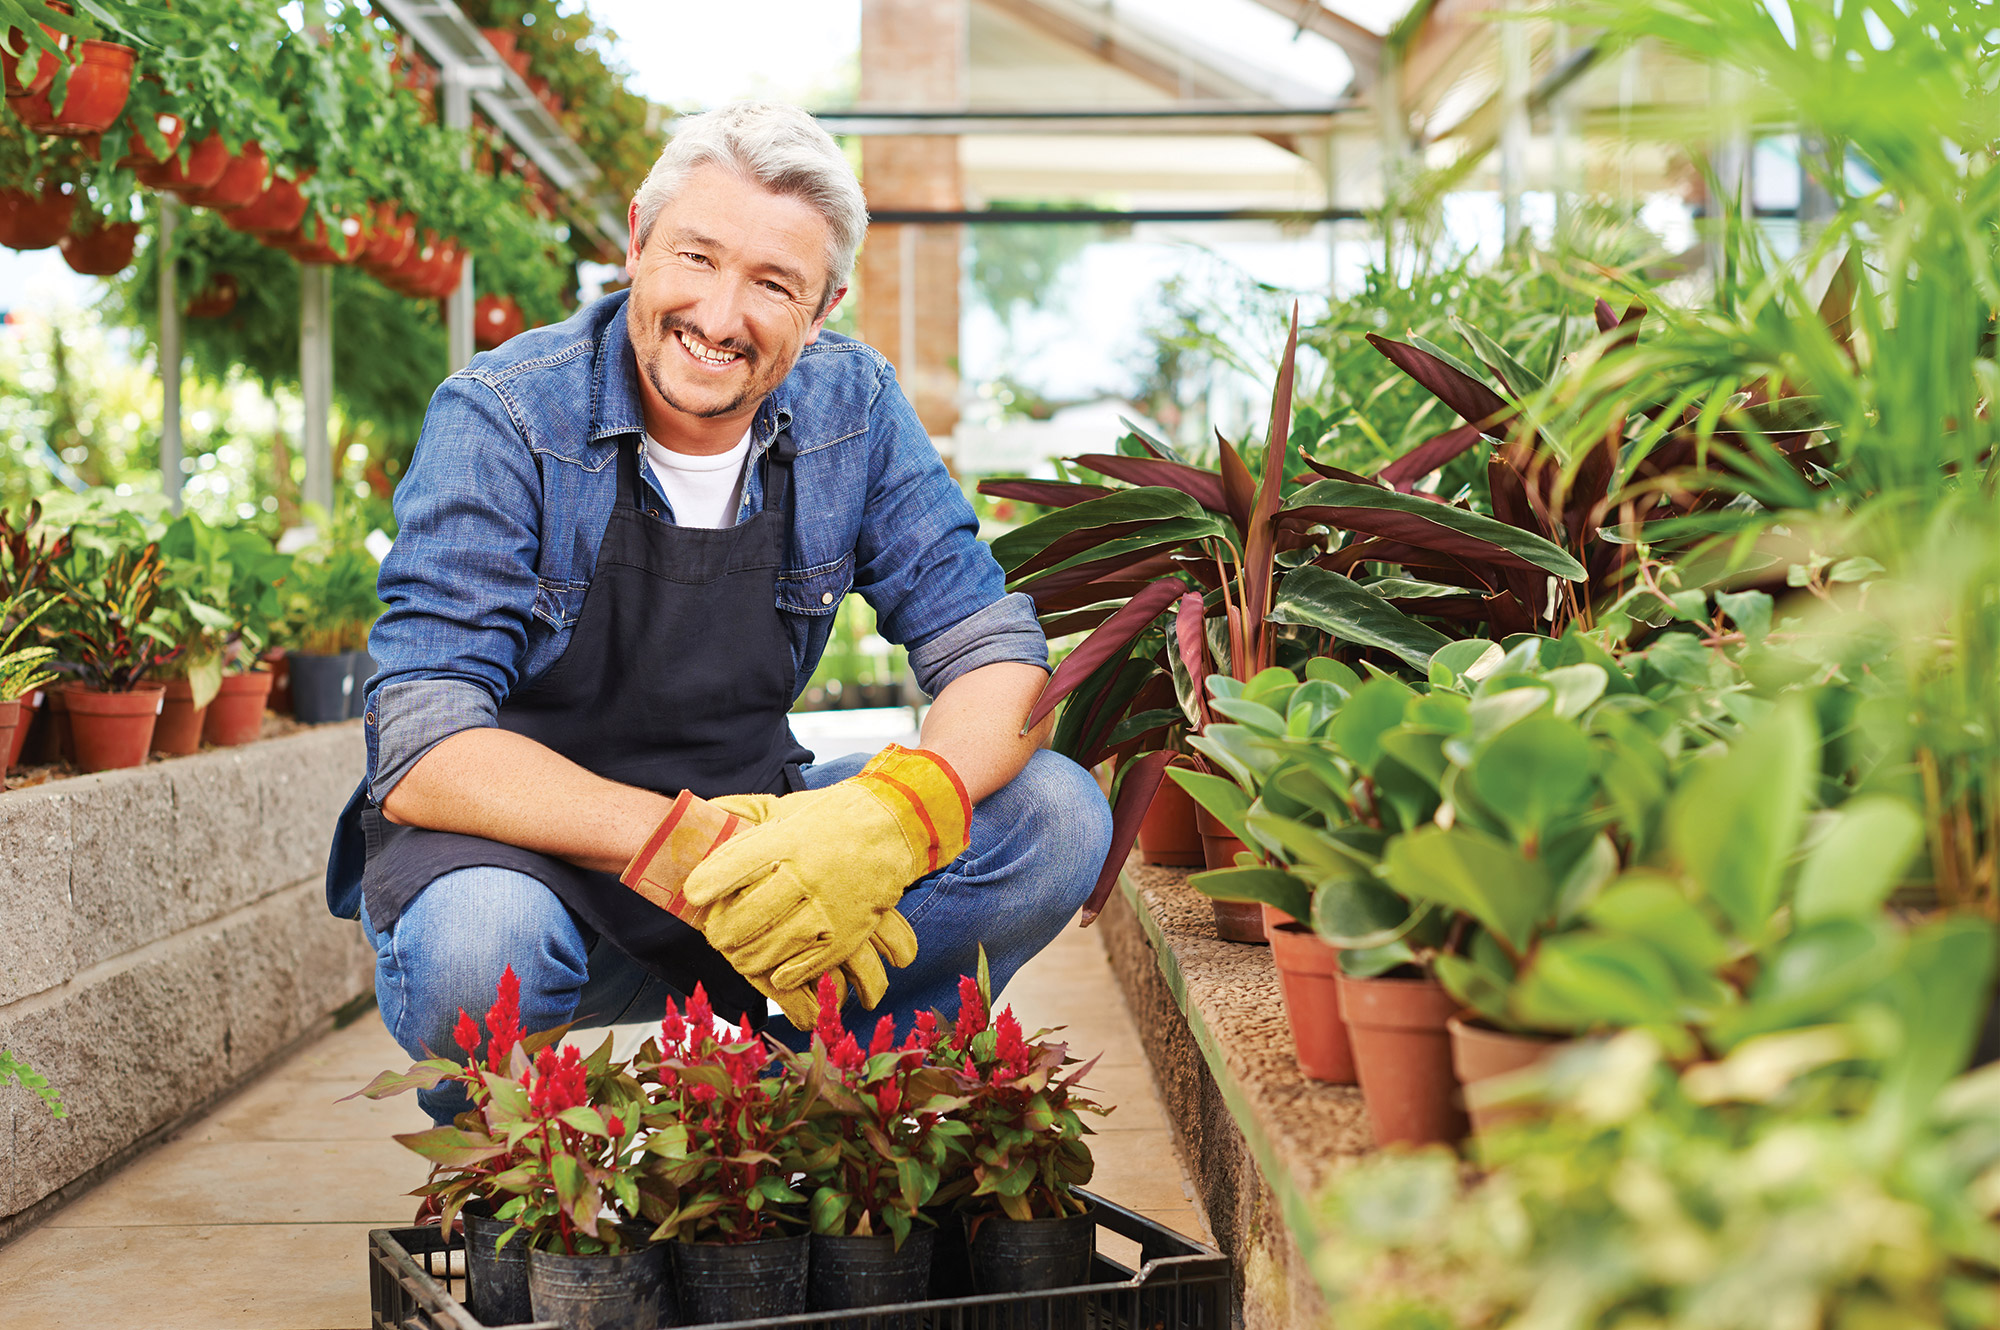 Devenir-horticulteur-formation-reconversion